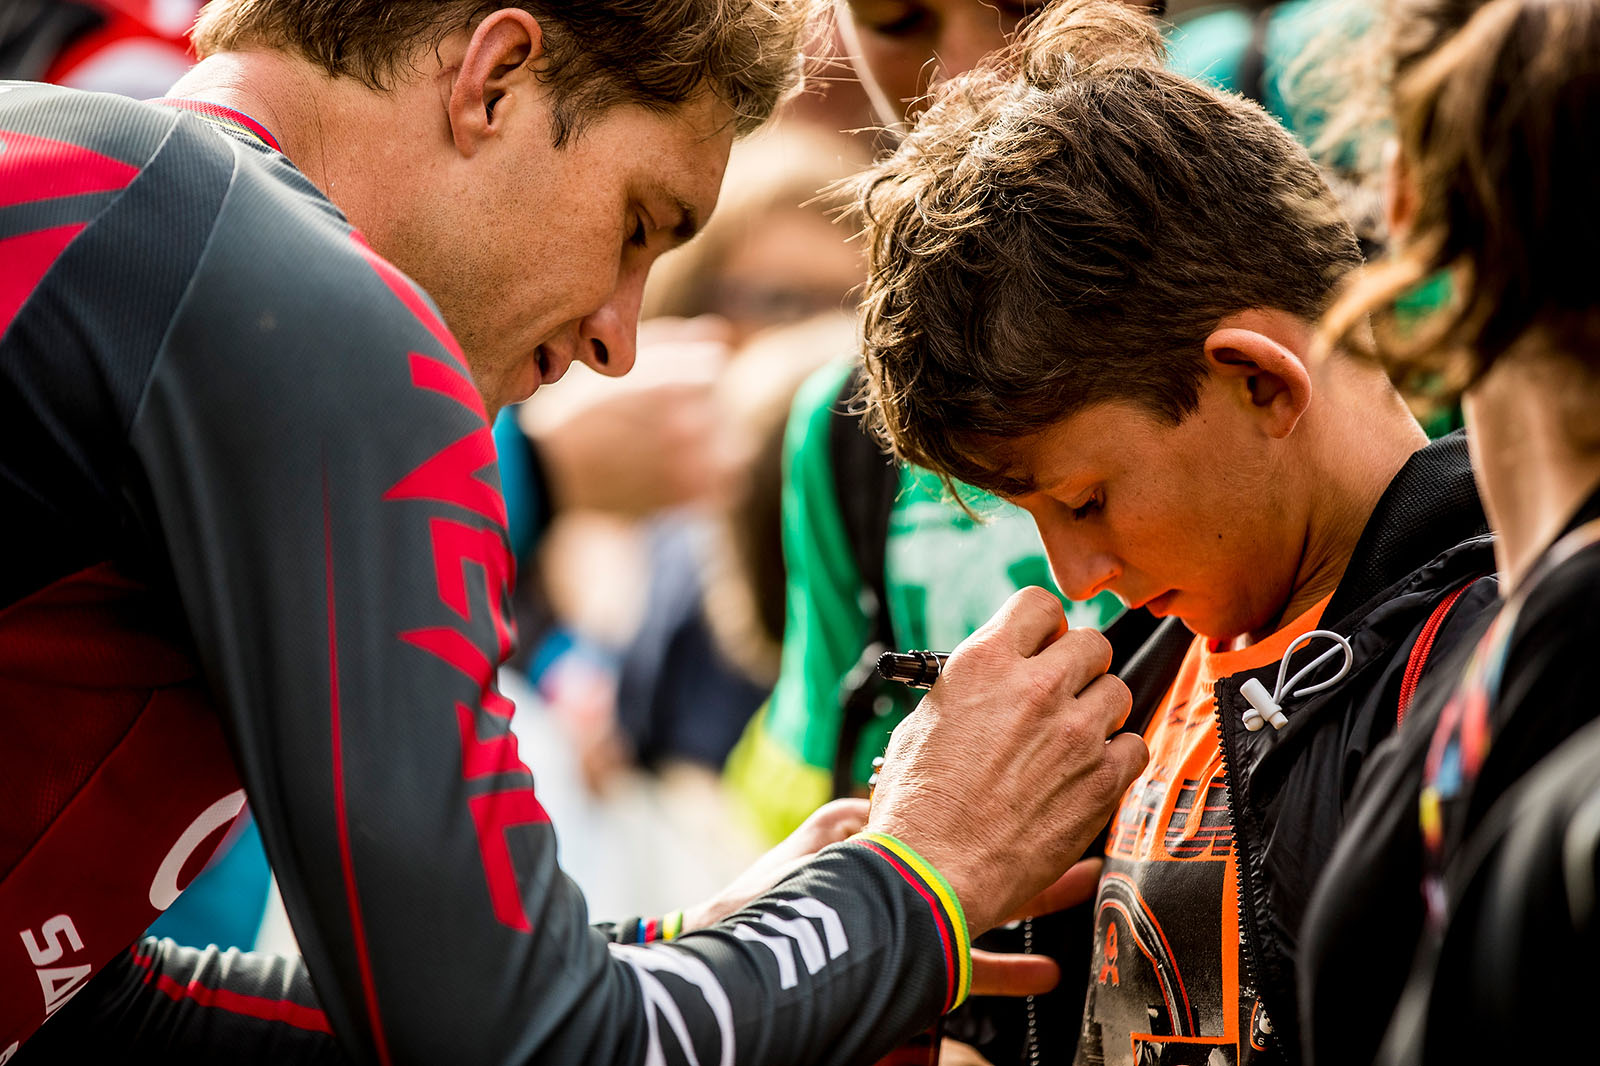 Greg Minnaar signing the jersey of a young fan at Val di Sole